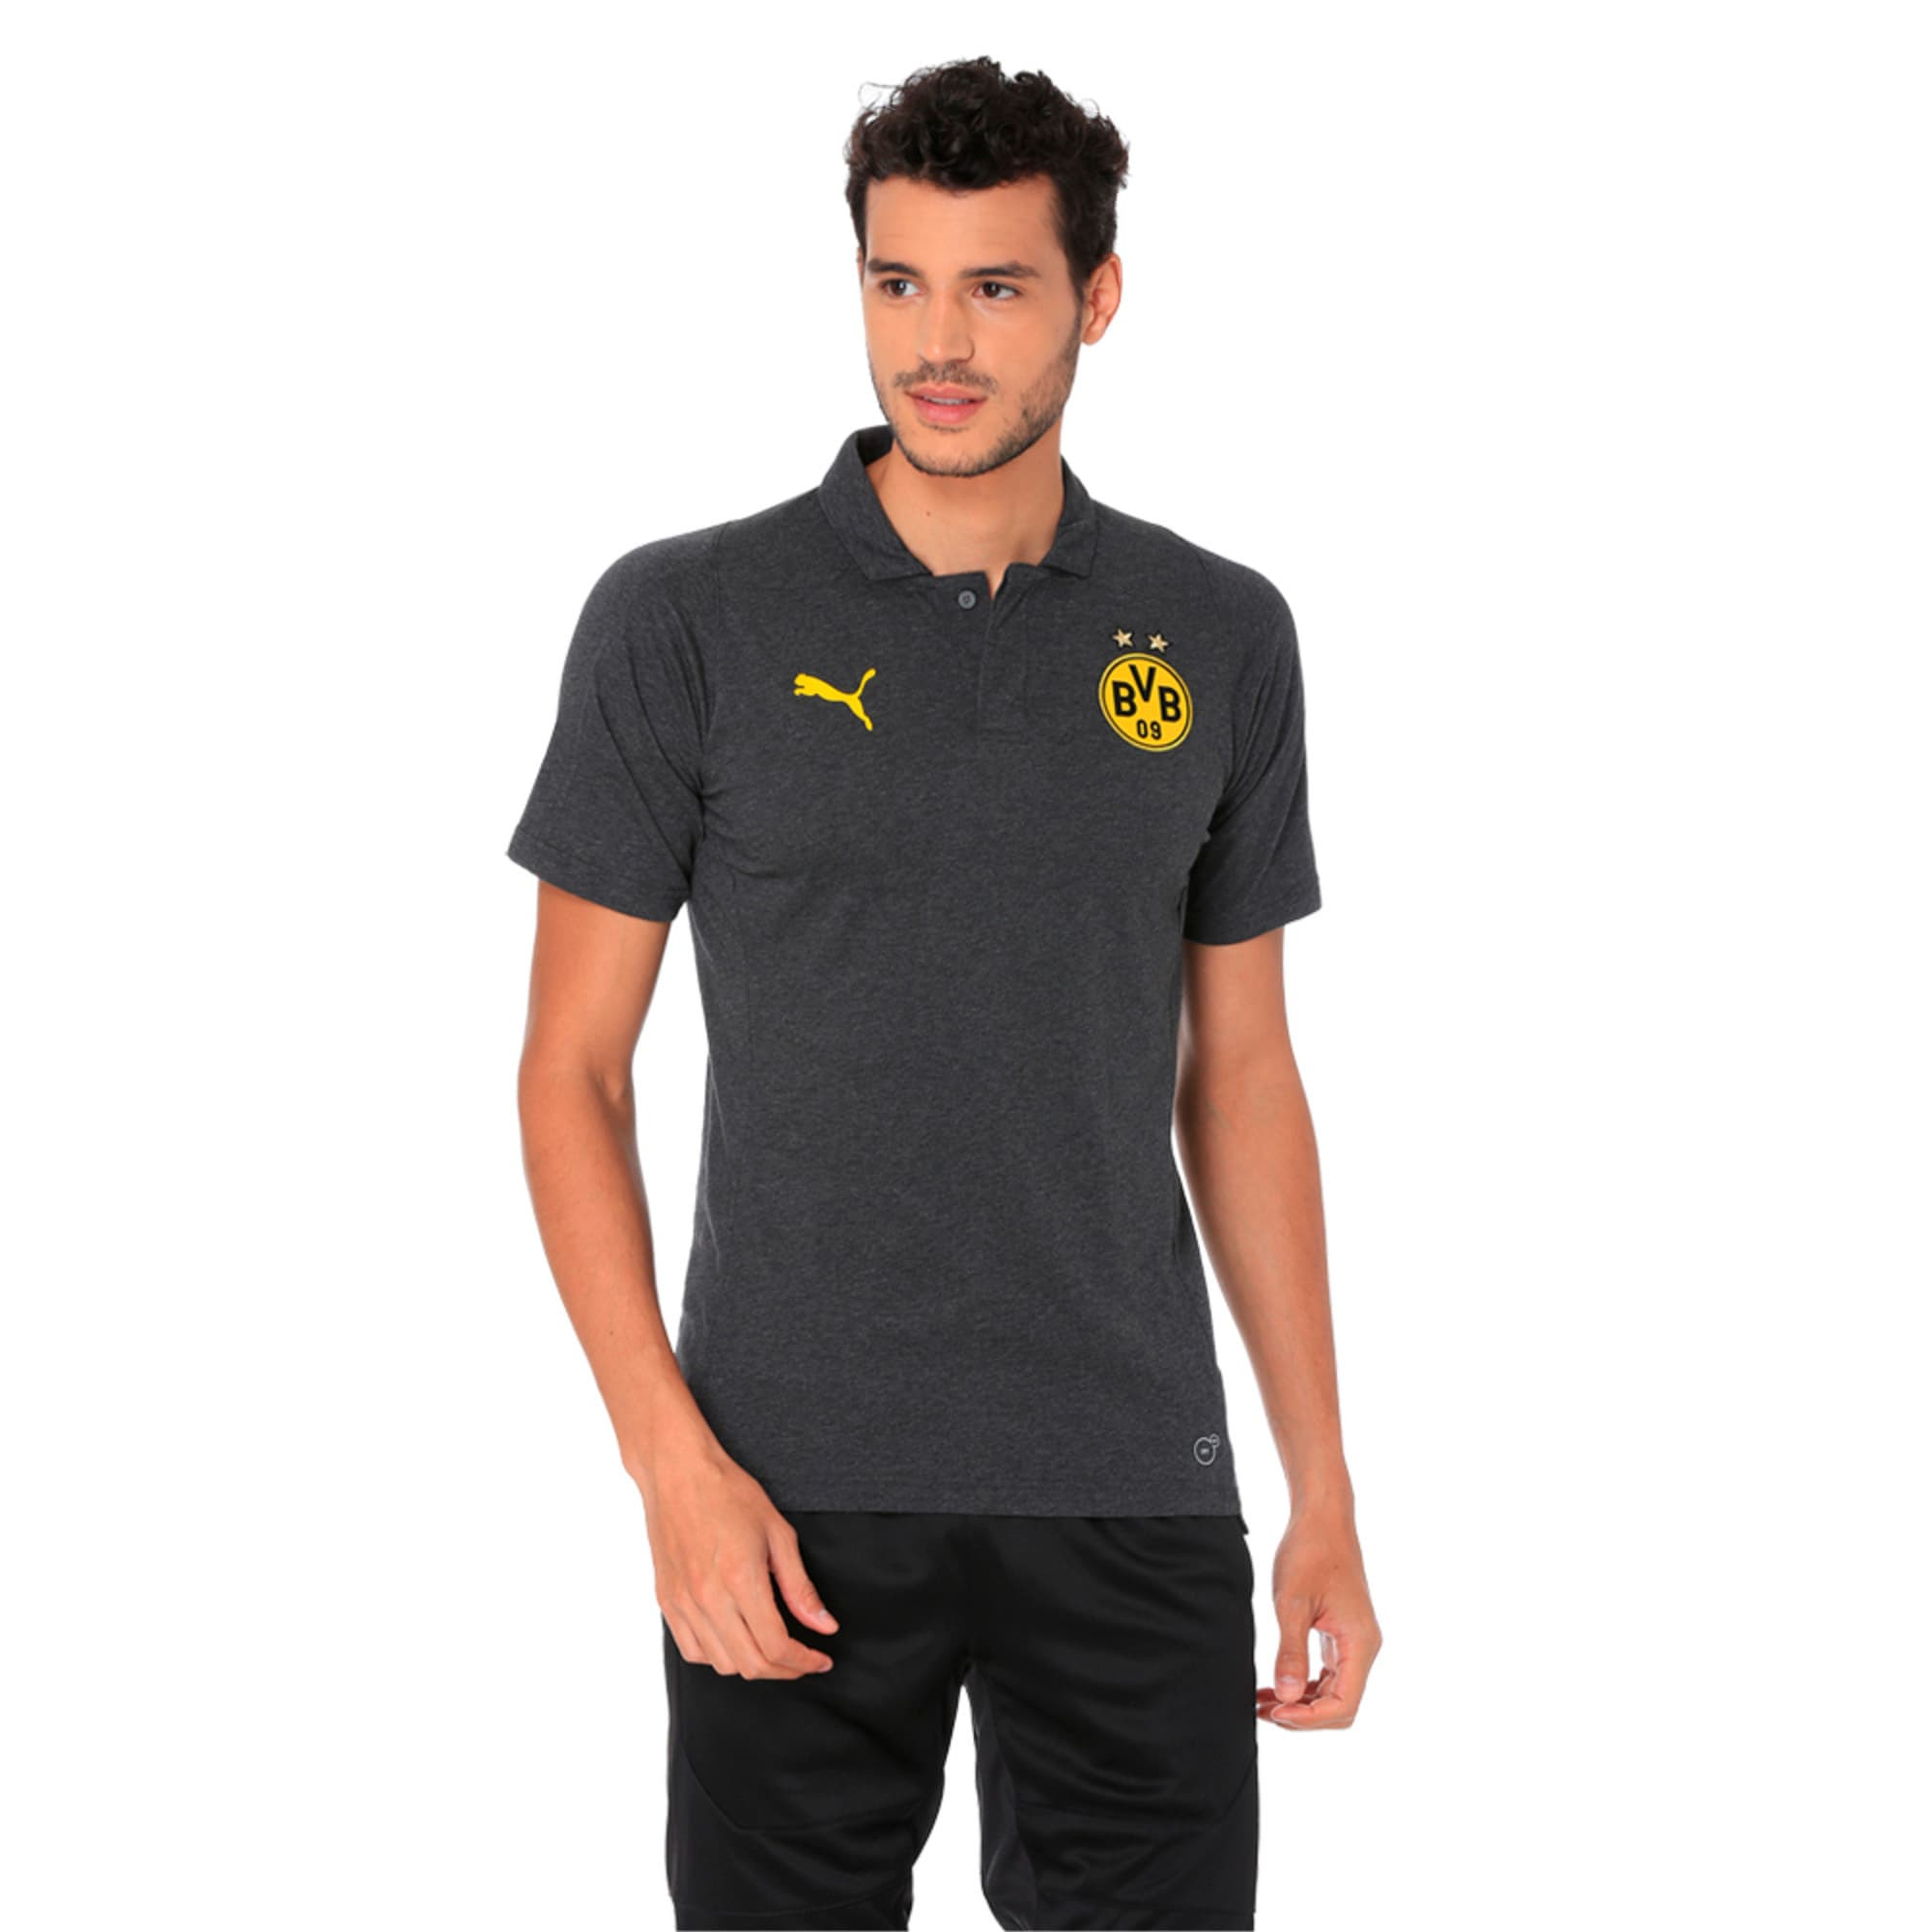 Thumbnail 3 of BVB Casual Polo without Sponsor Logo Pum, Dark Gray Heather, medium-IND